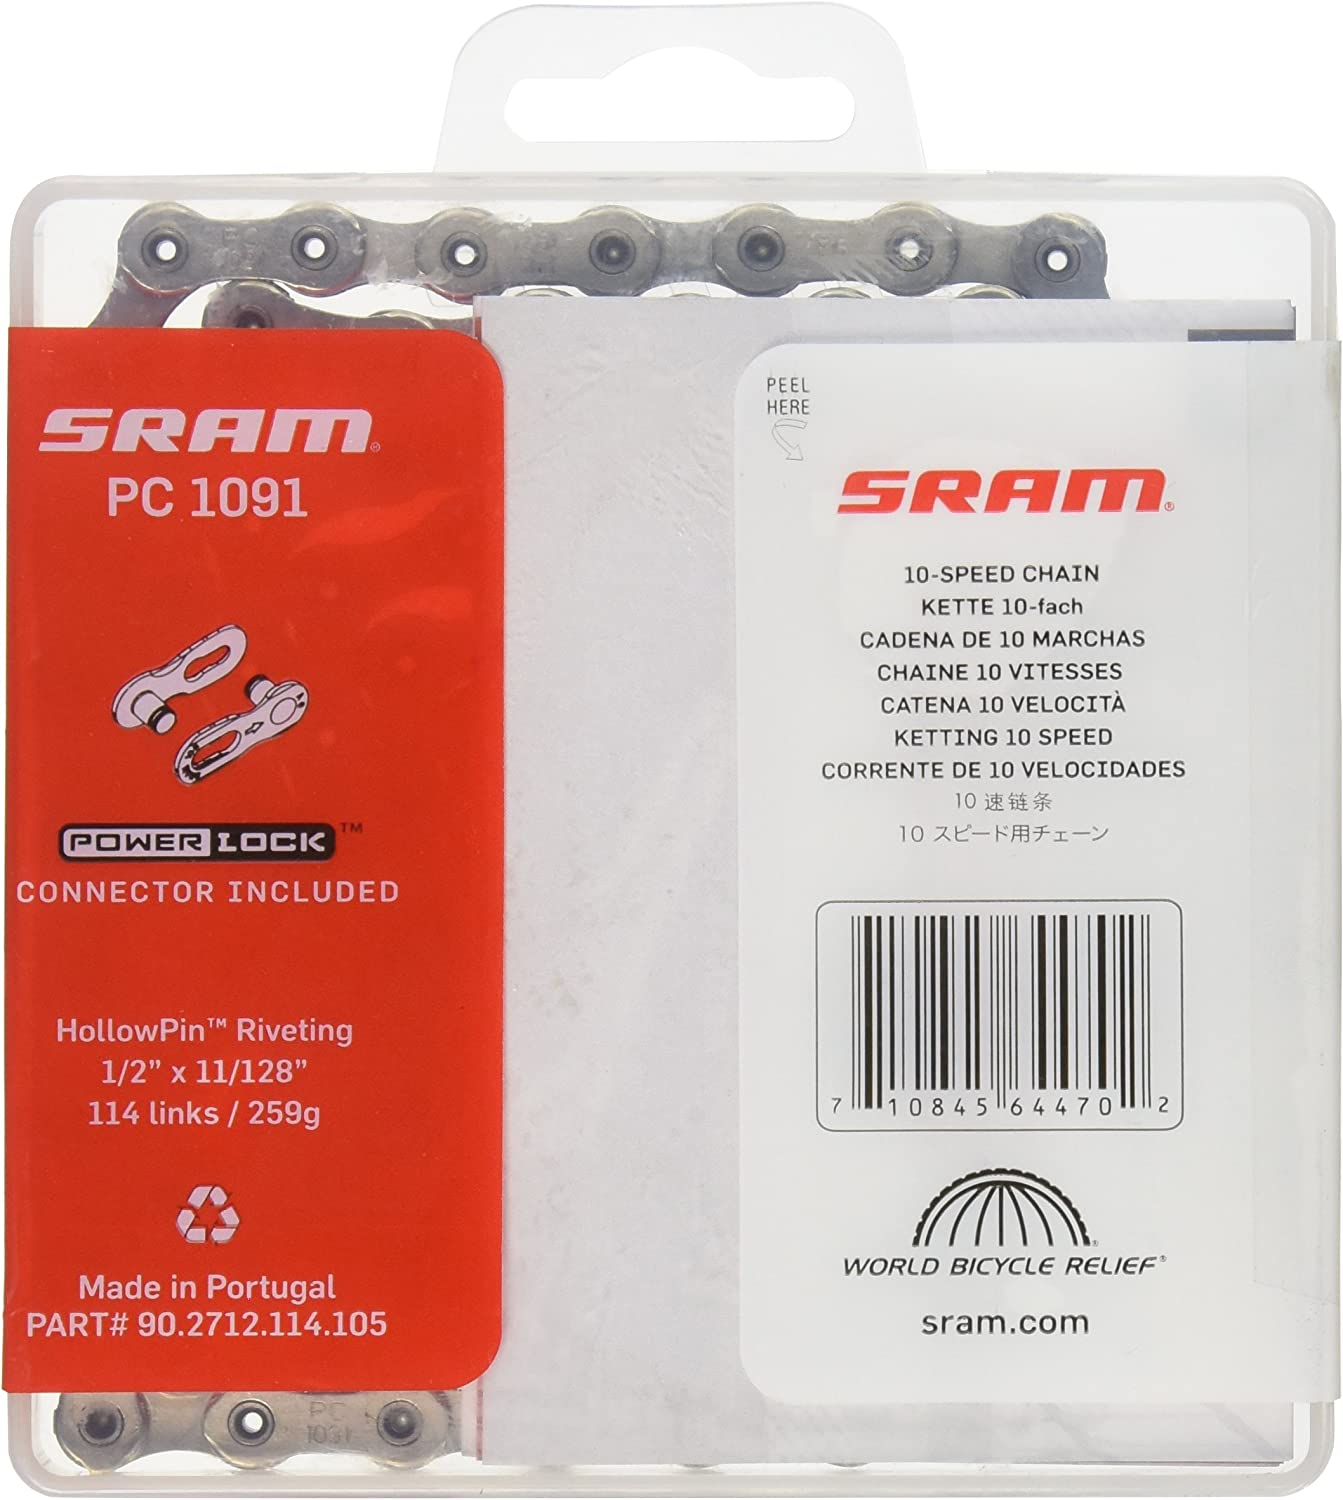 SRAM PC-1091R PC1091R 10 Spd Chain Hollow Pin 114 links CHAMFERED Outer Plates